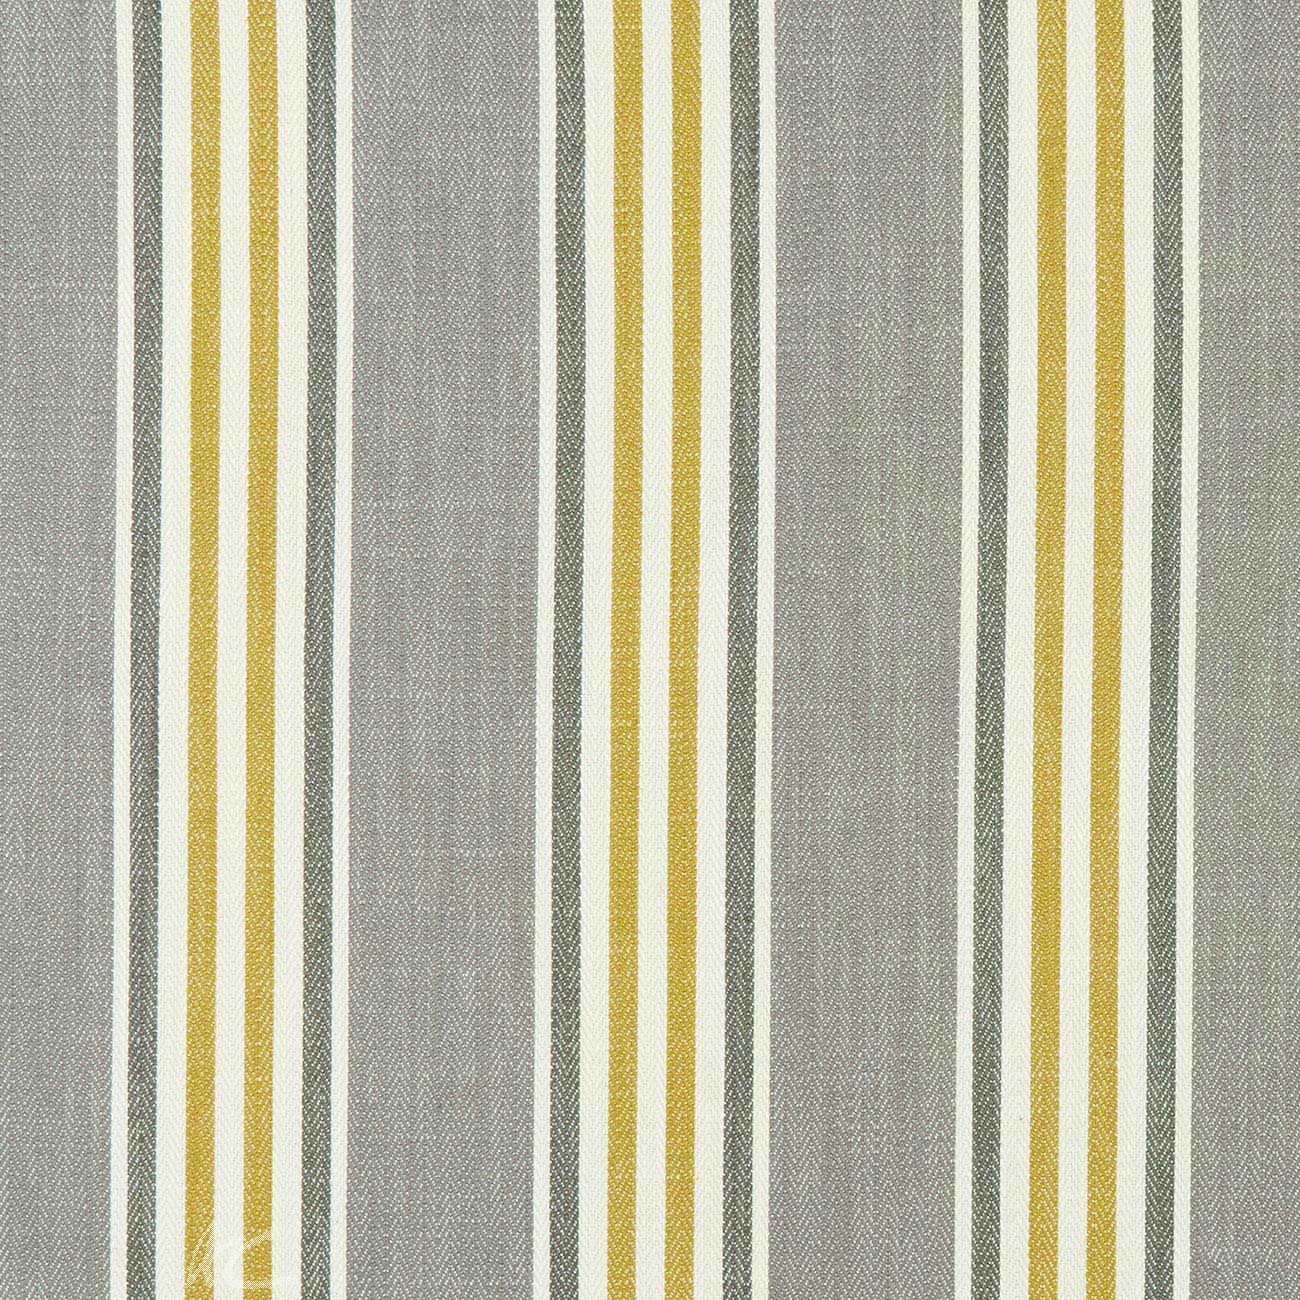 Clarke and Clarke Bloomsbury Quentin Charcoal/charteuse Curtain Fabric